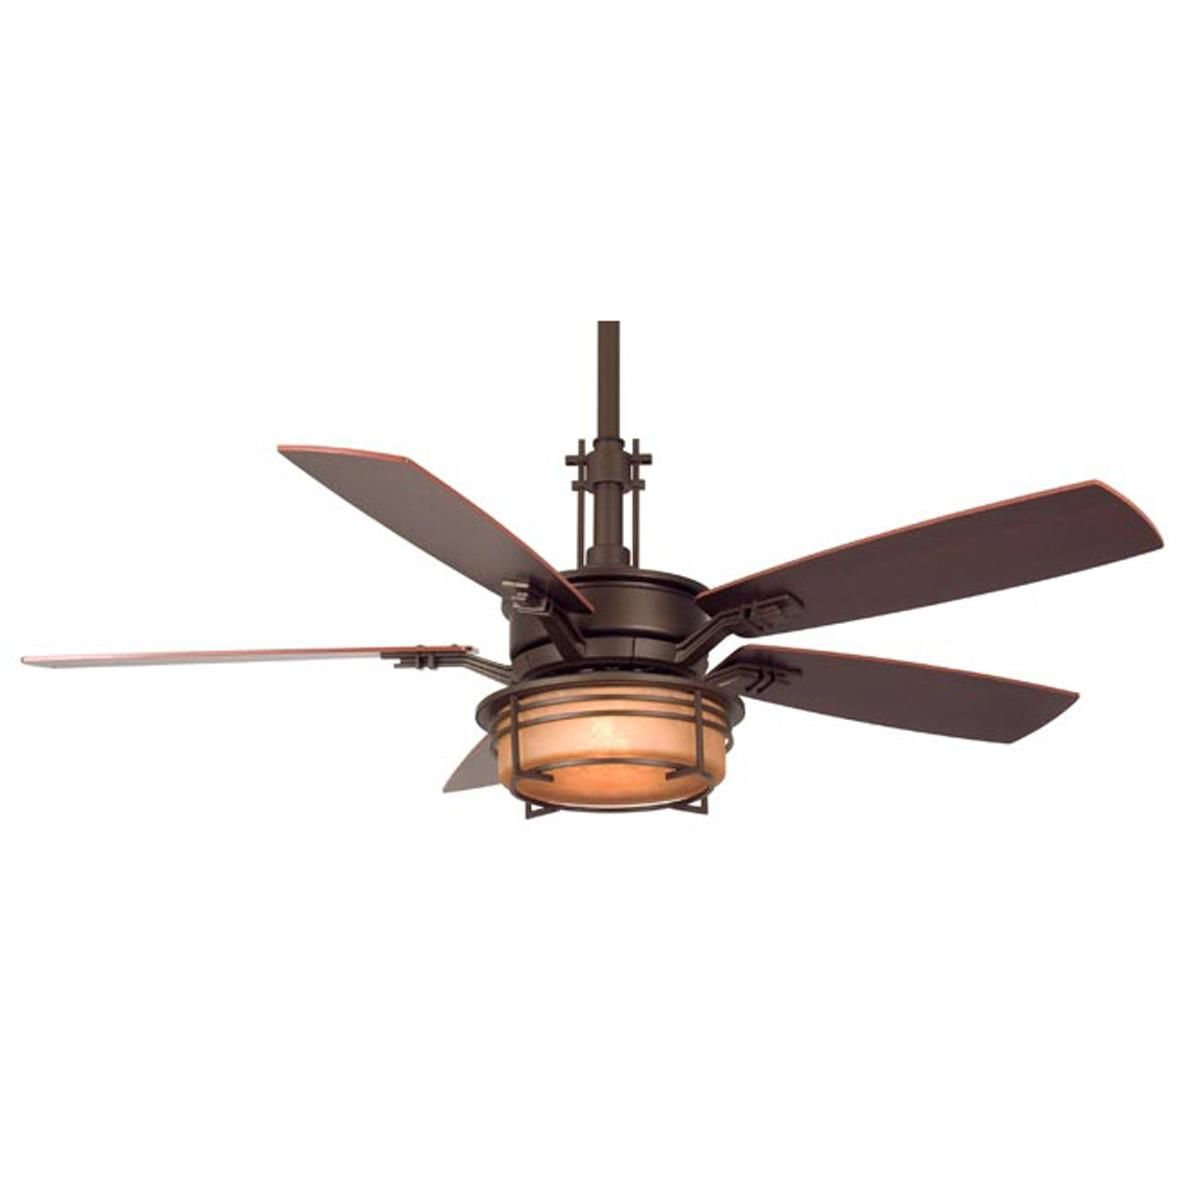 54 Craftsman Style Ceiling Fan The Craftsman Ceiling Fan Features